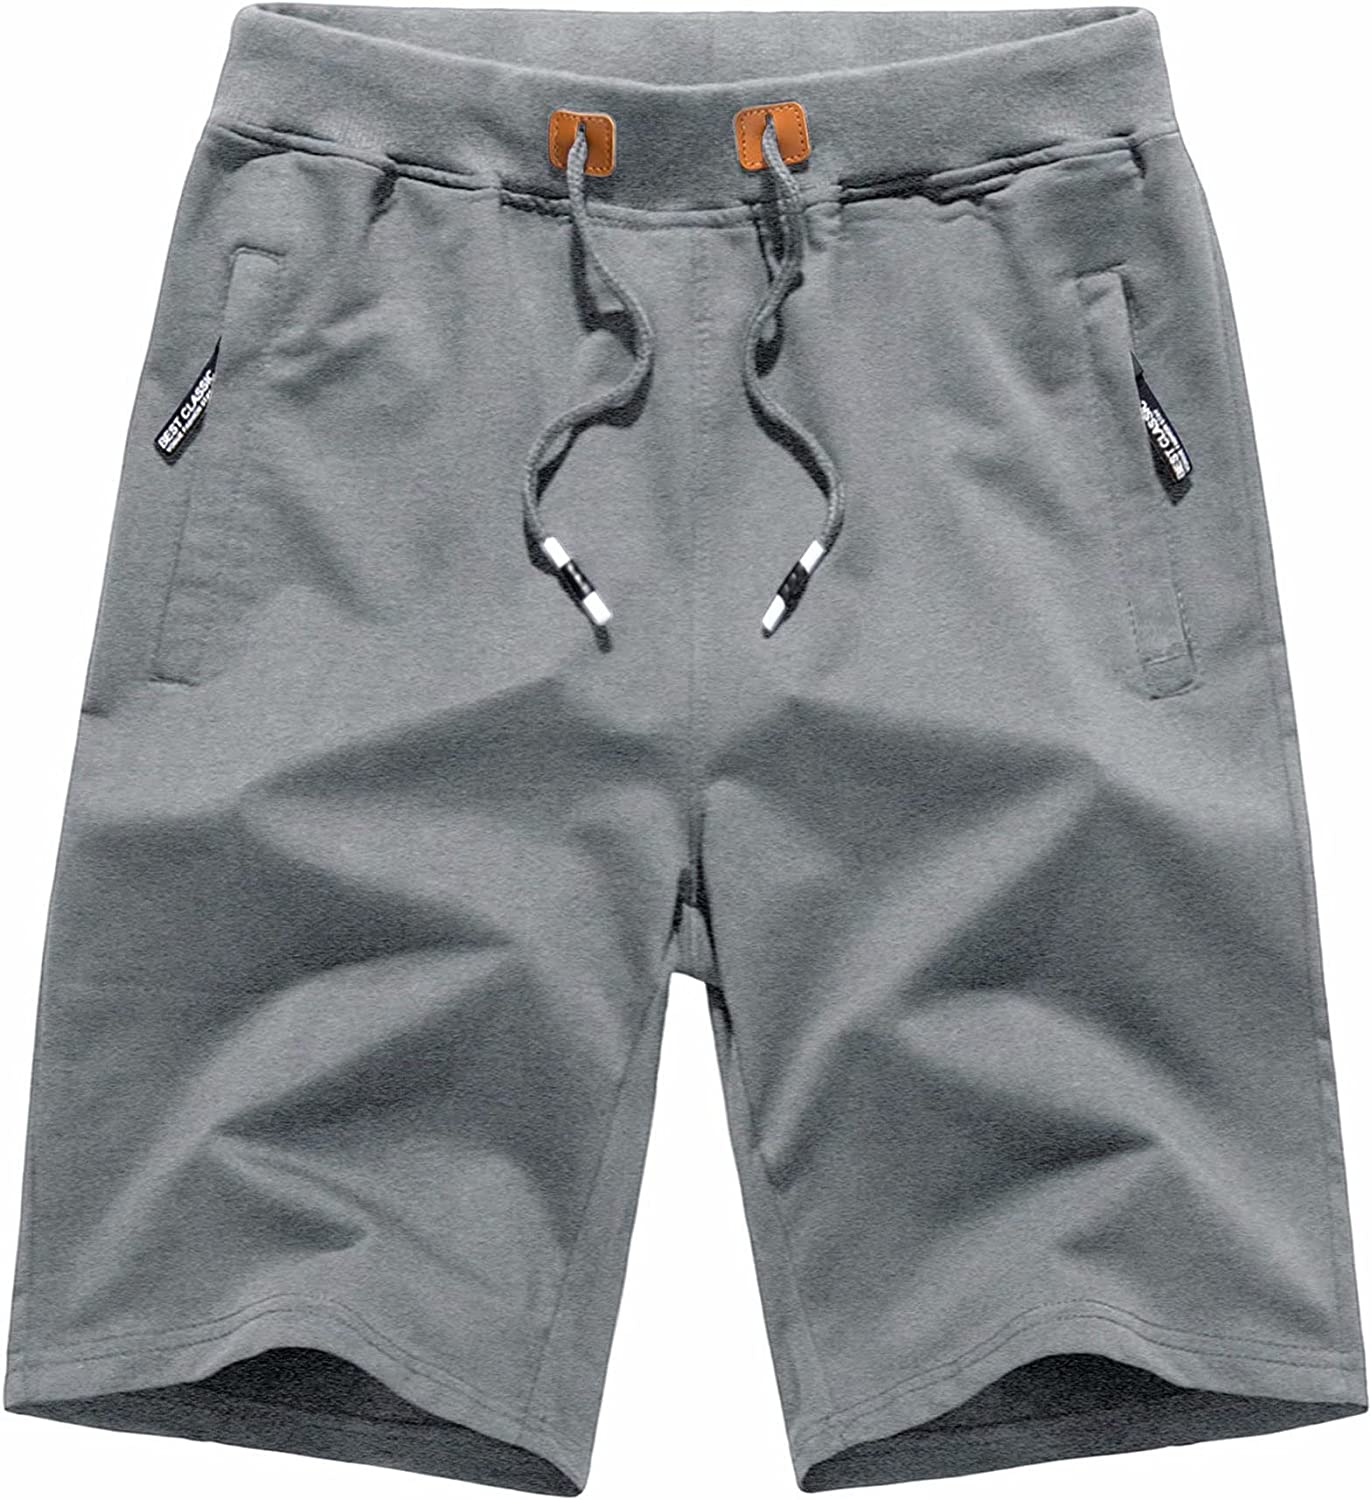 MAGCOMSEN Men's Workout Running Shorts Pockets Indianapolis Mall Dry Quick Max 58% OFF Zipper